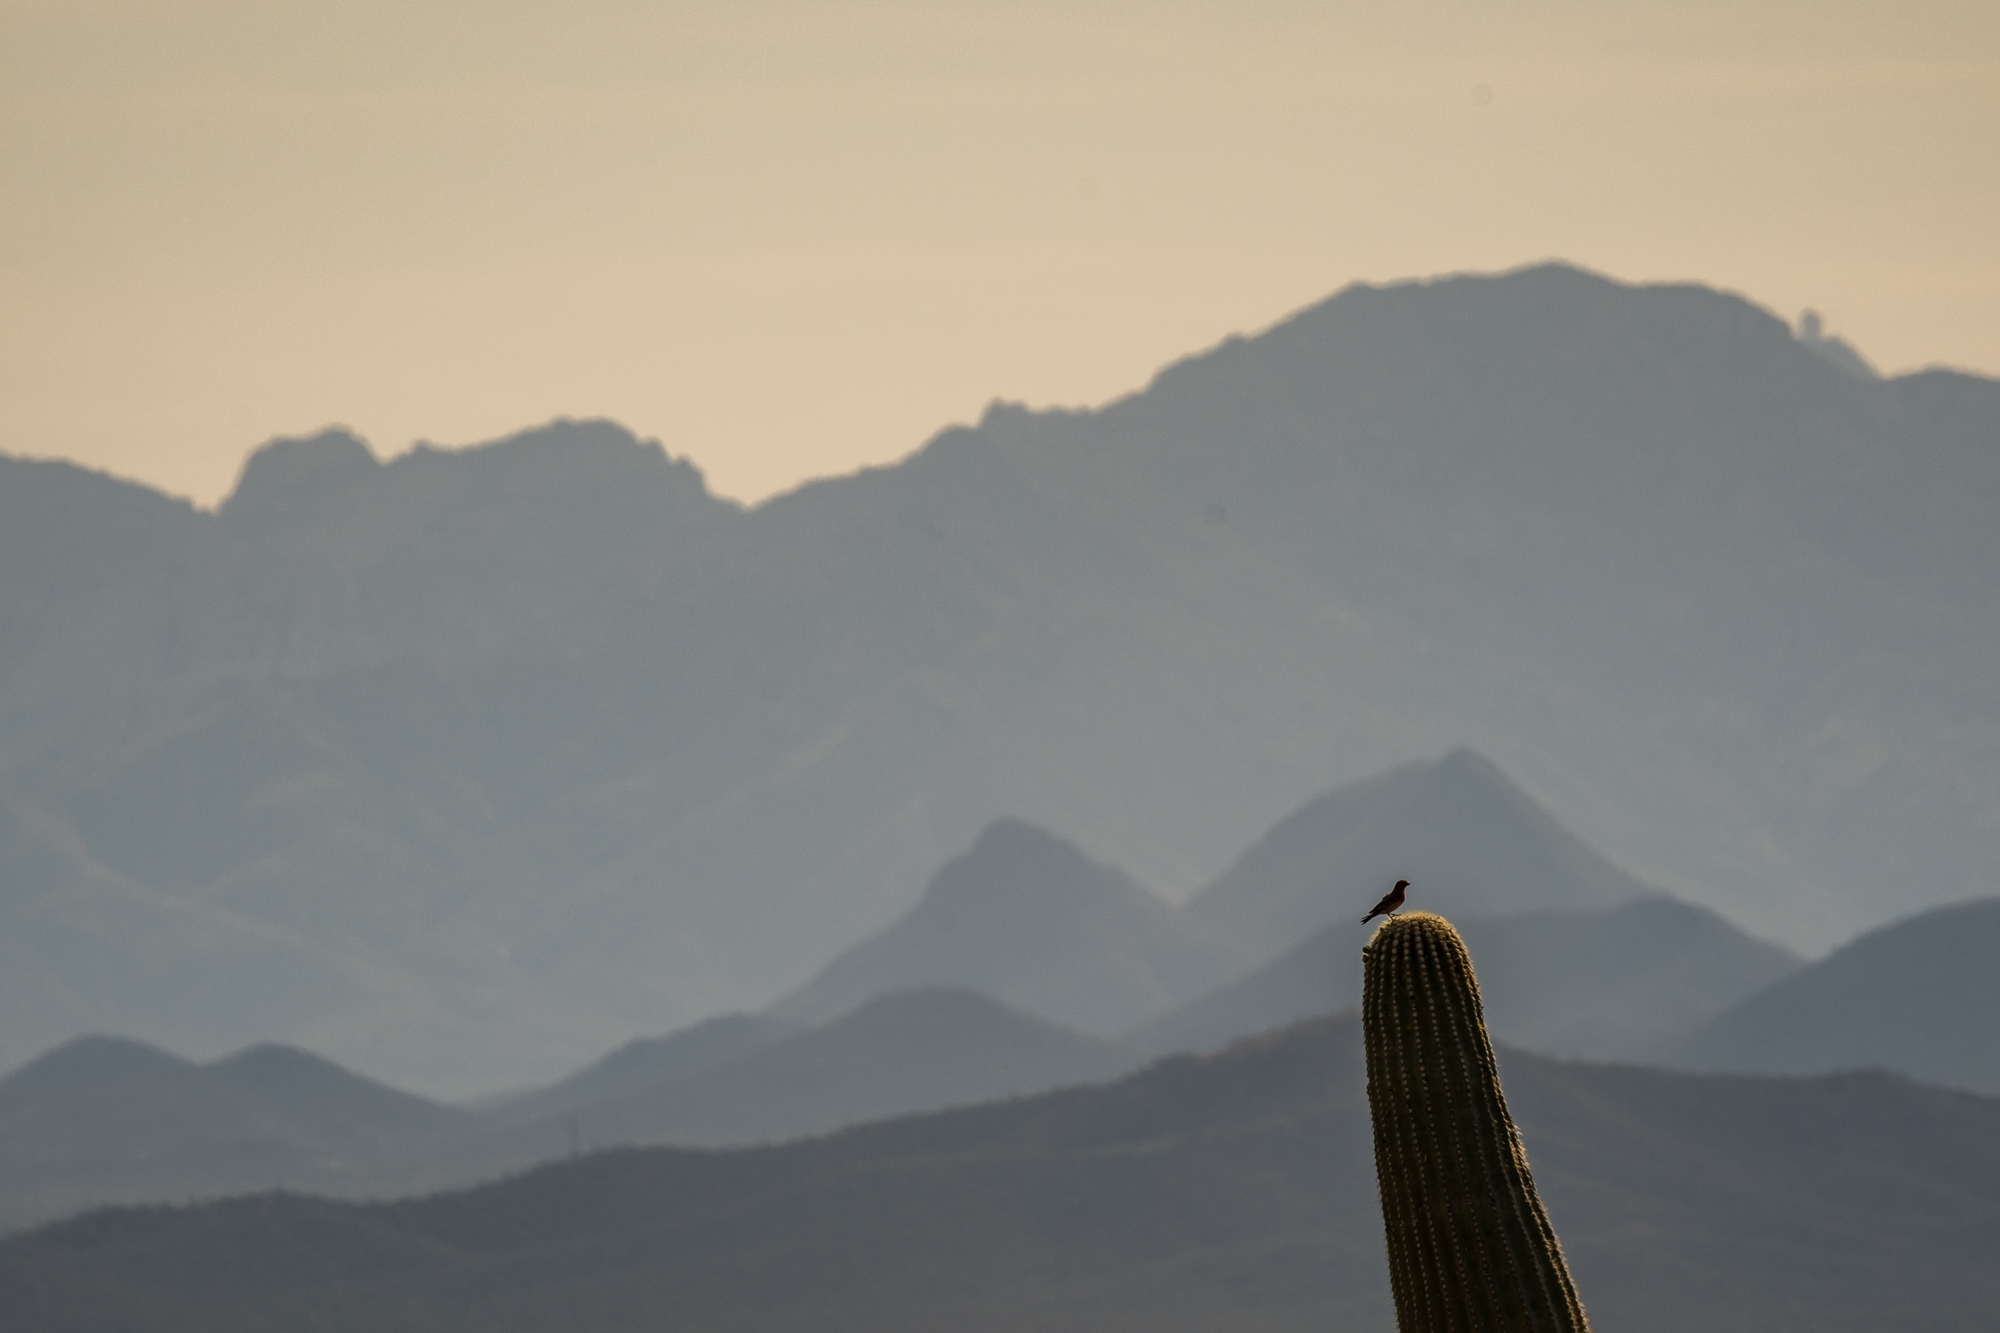 I caught this little birdy hanging out on top of the cactus, one of their favorite places to perch.